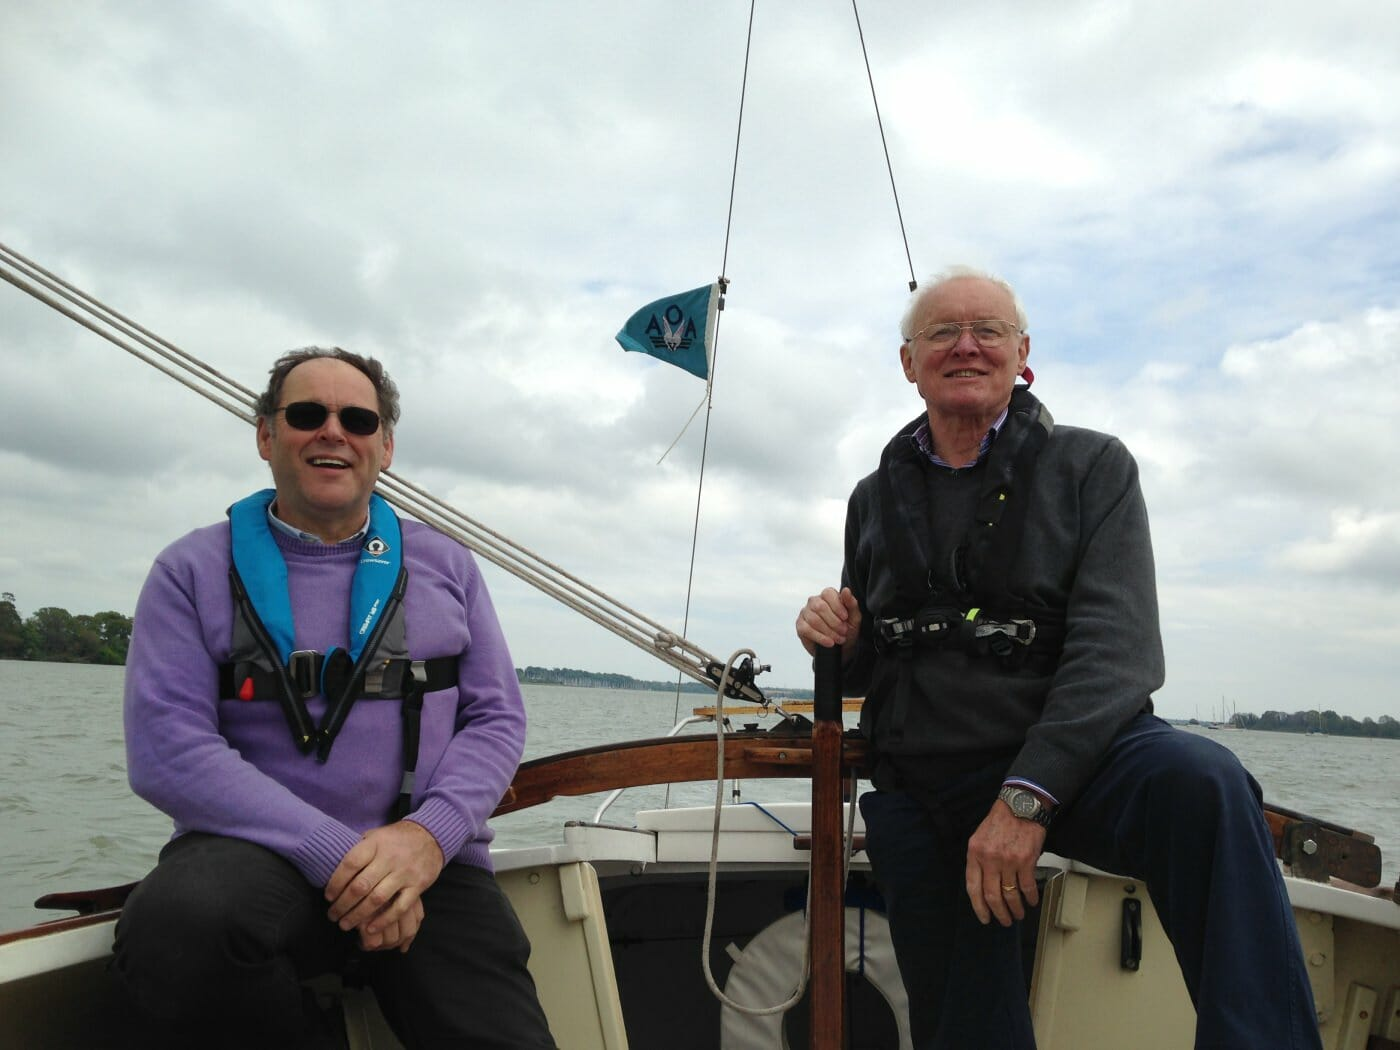 AOA Commodore Mike Dixon helming A89 Colchide on the River Orwell in May 2017 with Webmaster and Treasurer Nick Phillips crewing